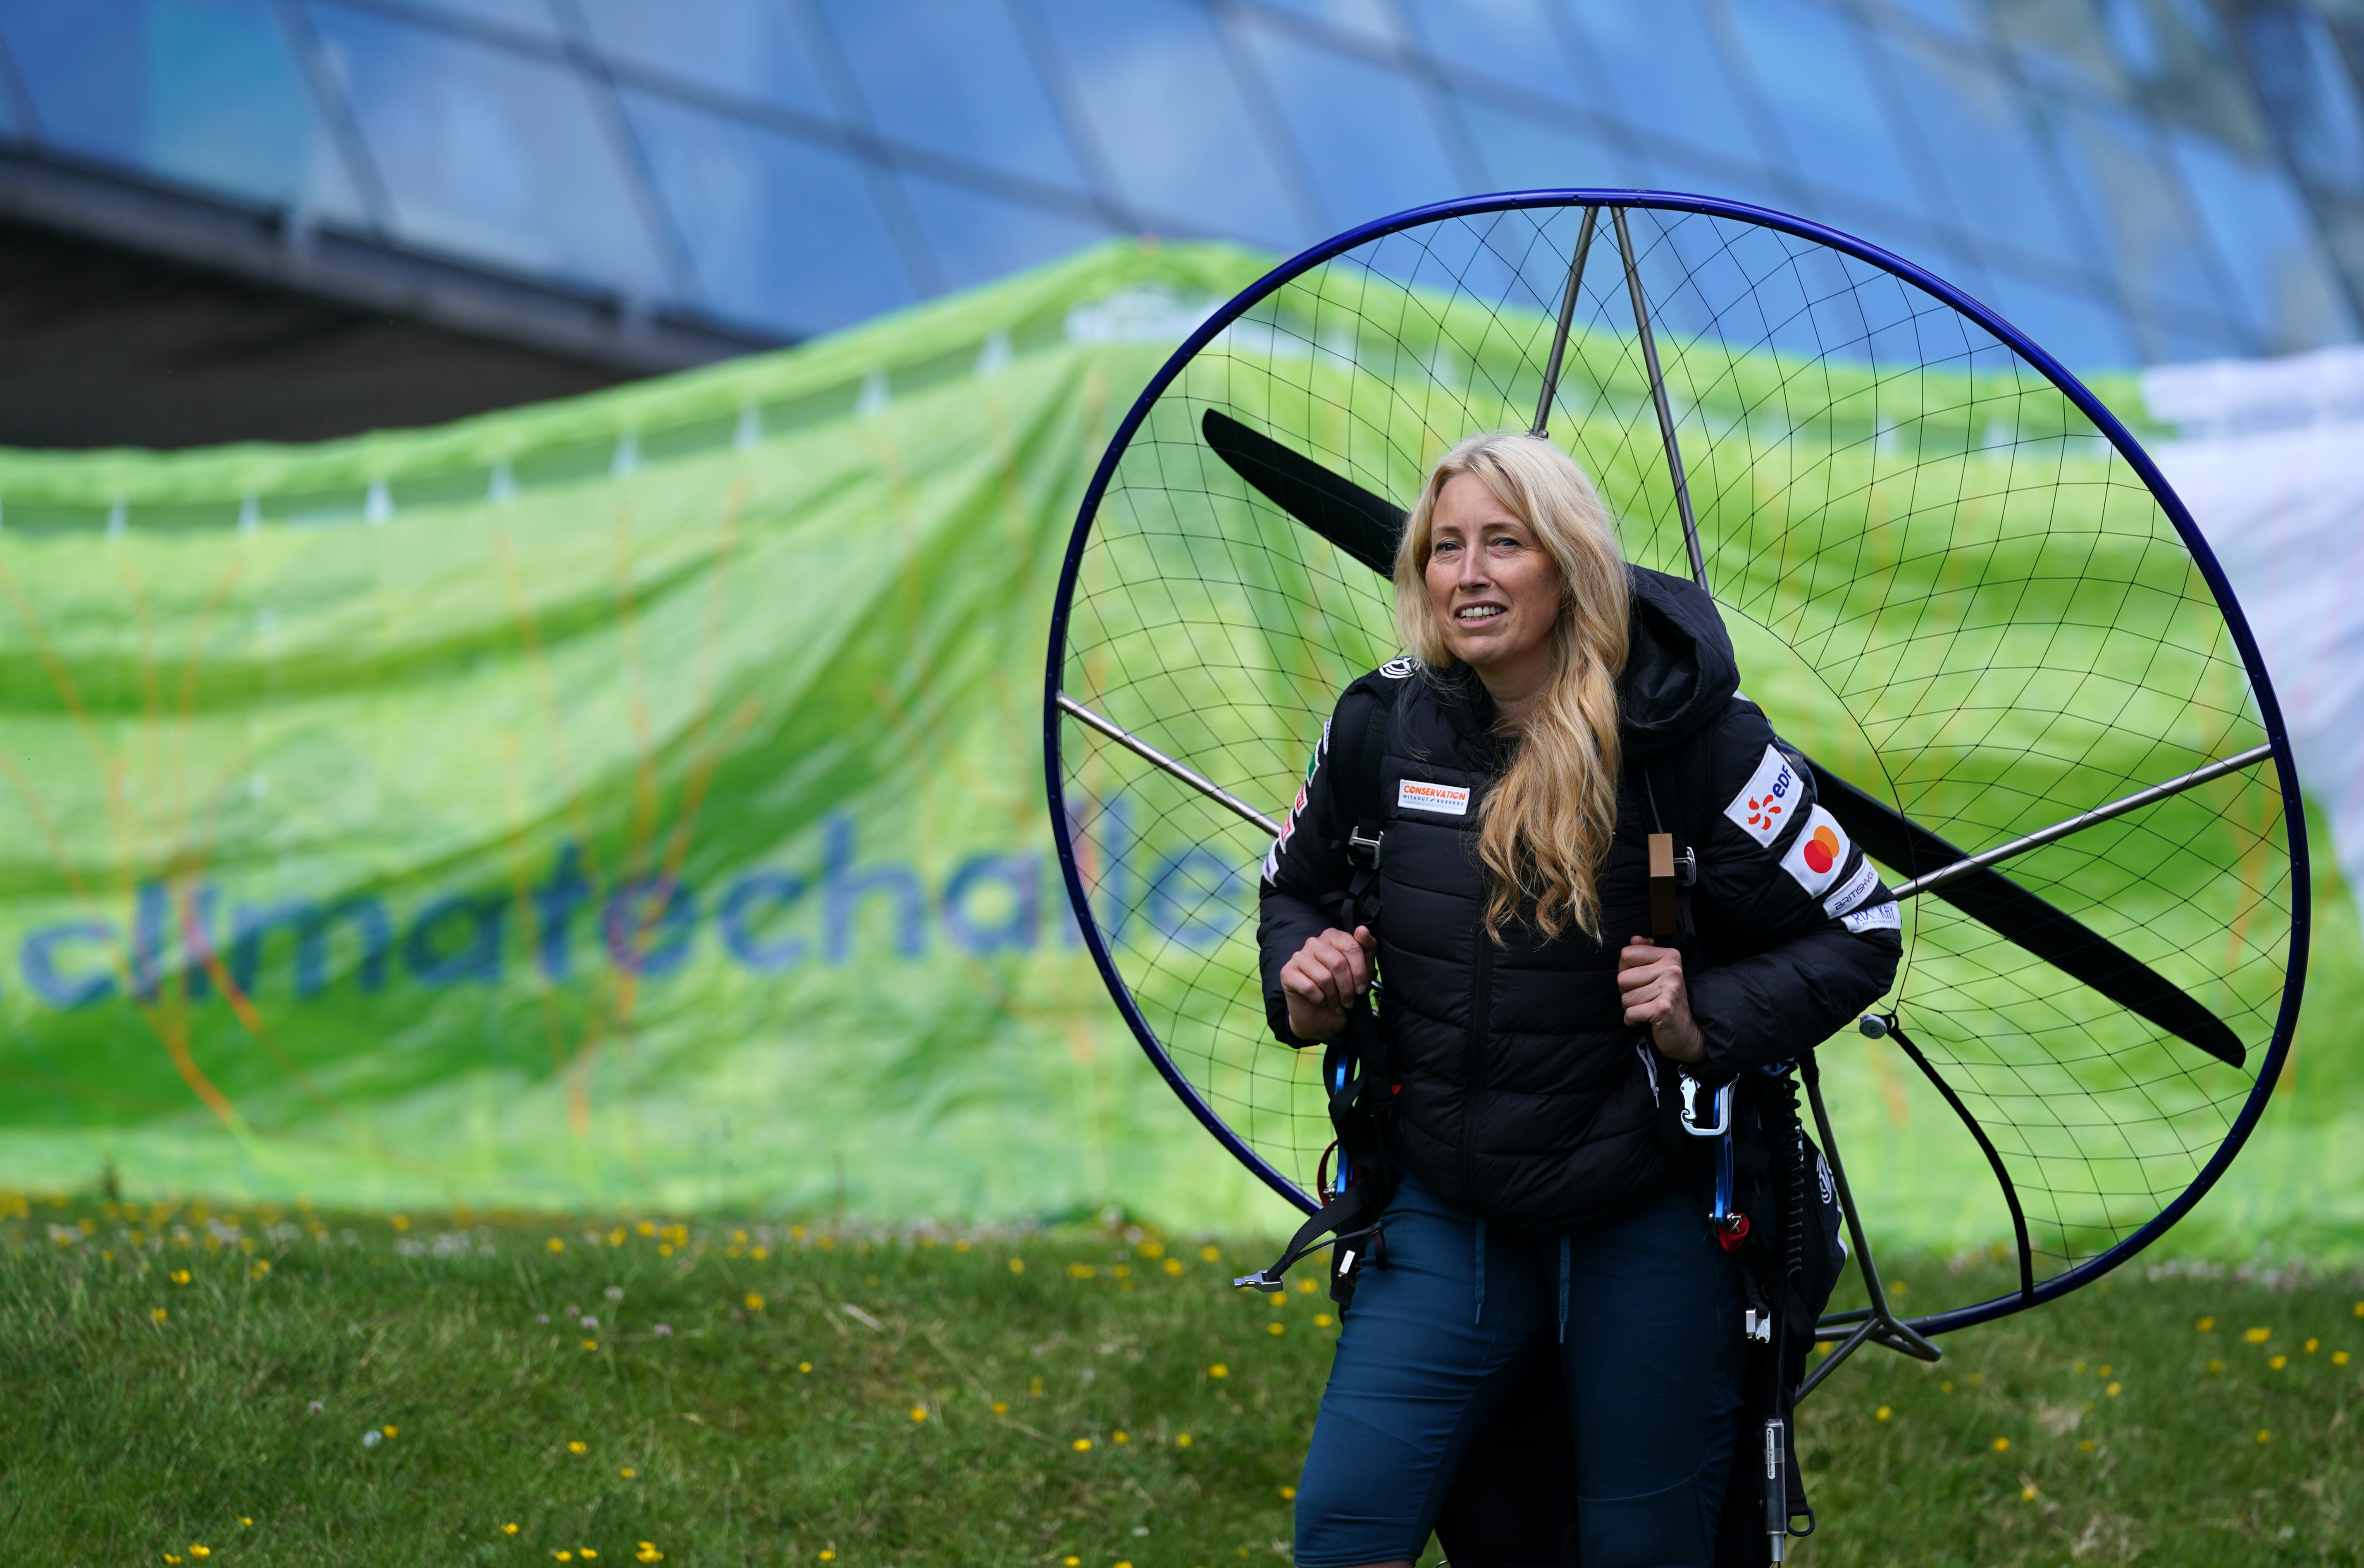 <p>Paramotorist Sacha Dench with her adapted electric paramotor at Glasgow Science Centre. Sacha, who is known as the 'Human Swan', will circumnavigate Britain in the adapted electric paramotor, flying anti-clockwise around the coast and returning to land in Glasgow around six weeks later, to mark the Cop26 climate conference being held in Glasgow. Picture date: Friday June 18, 2021.</p>